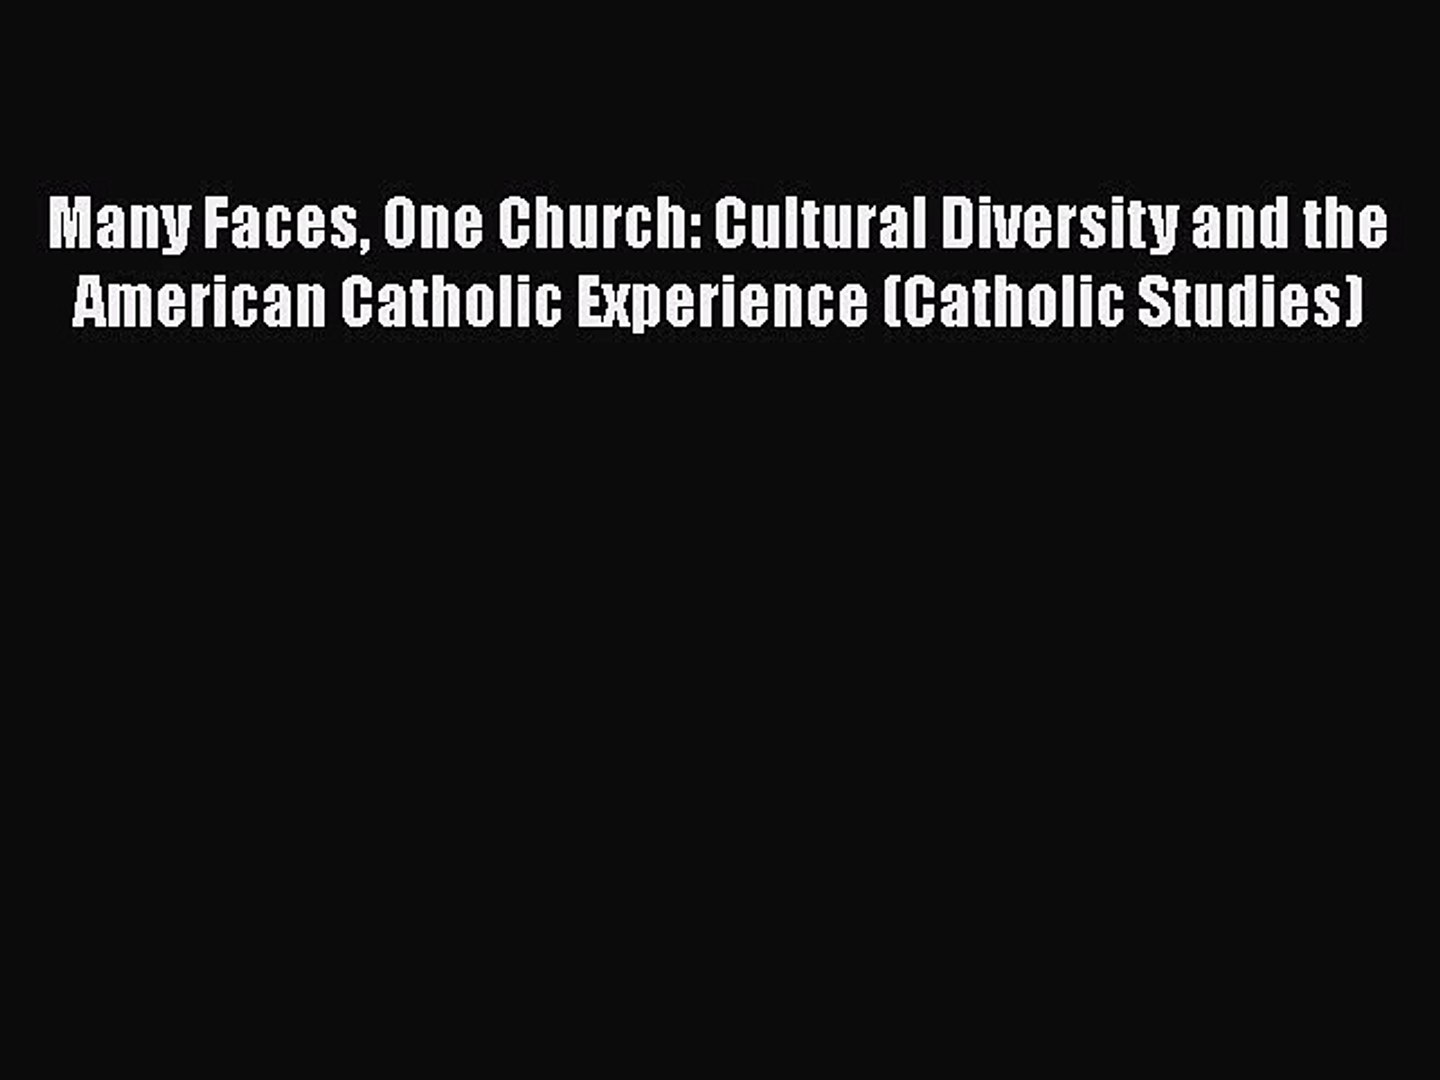 Download Many Faces One Church: Cultural Diversity and the American Catholic Experience (Catholic